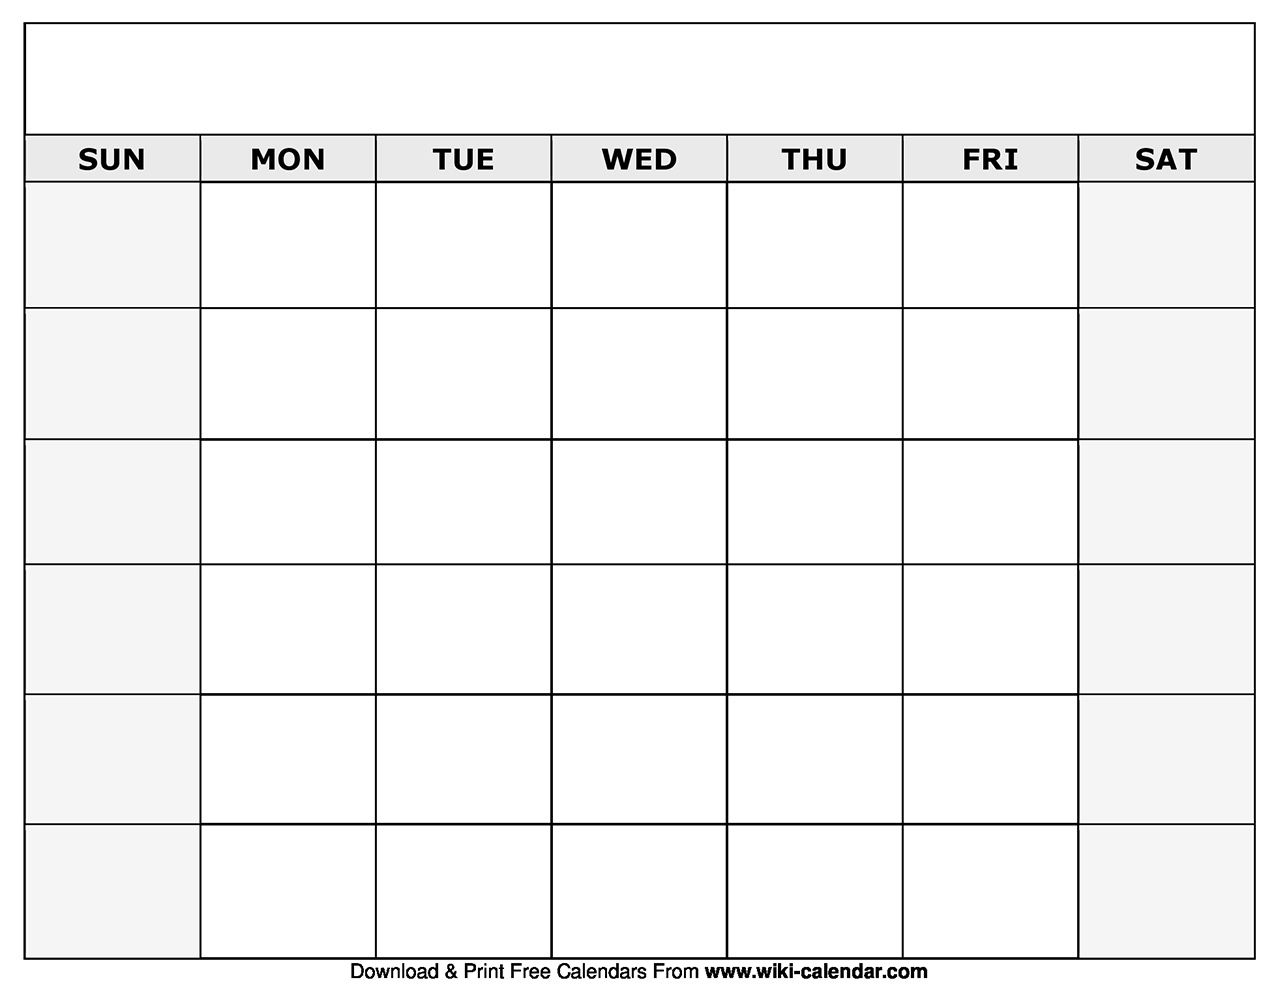 Catch Blank Monthly Calender Calender